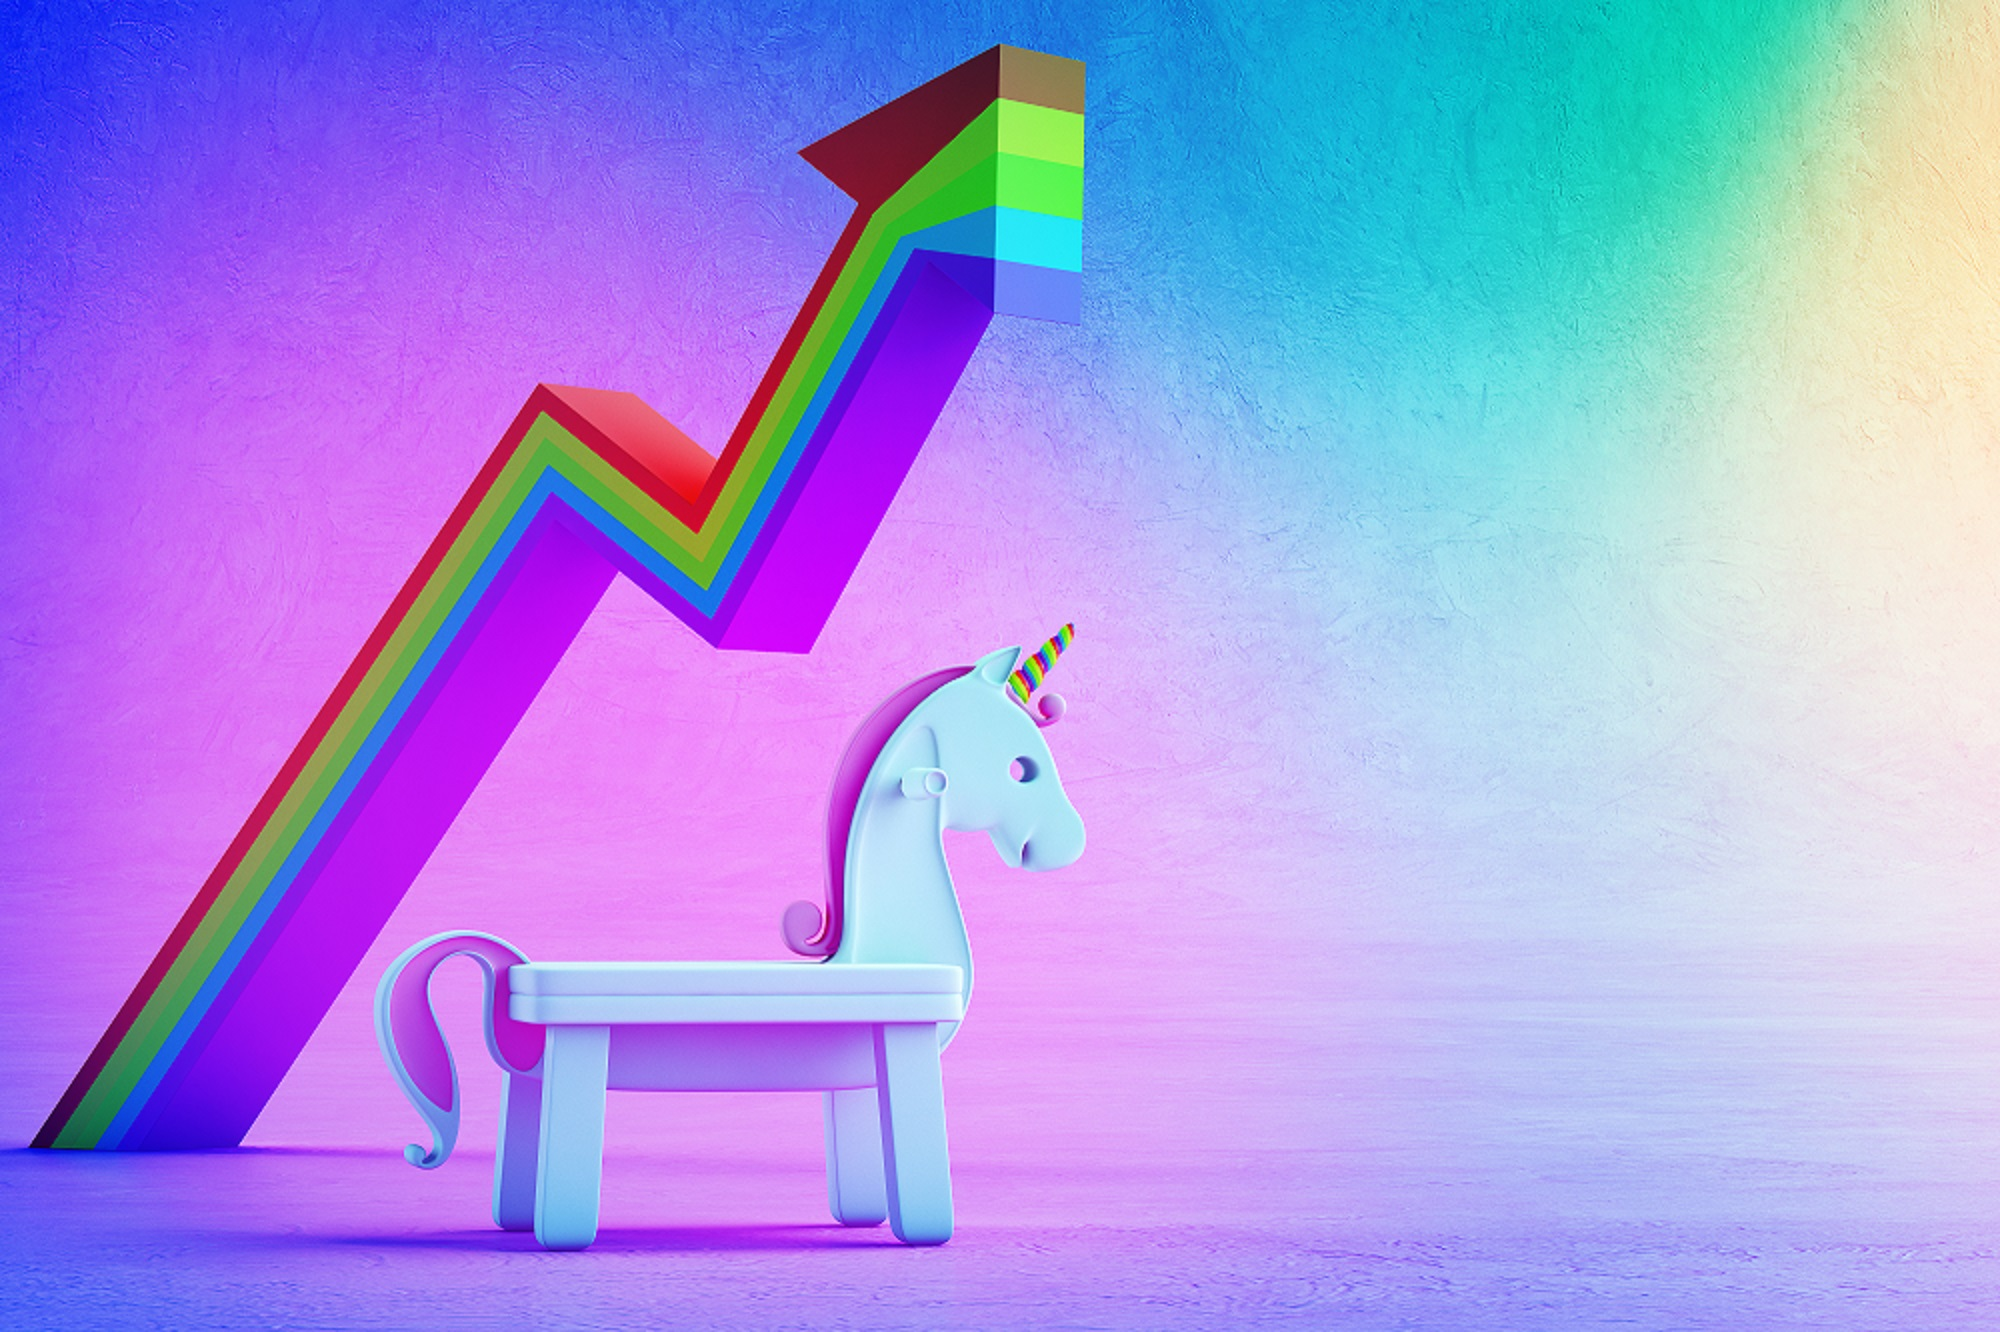 Might recent 'unicorn' IPOs encourage investors to be more rational?